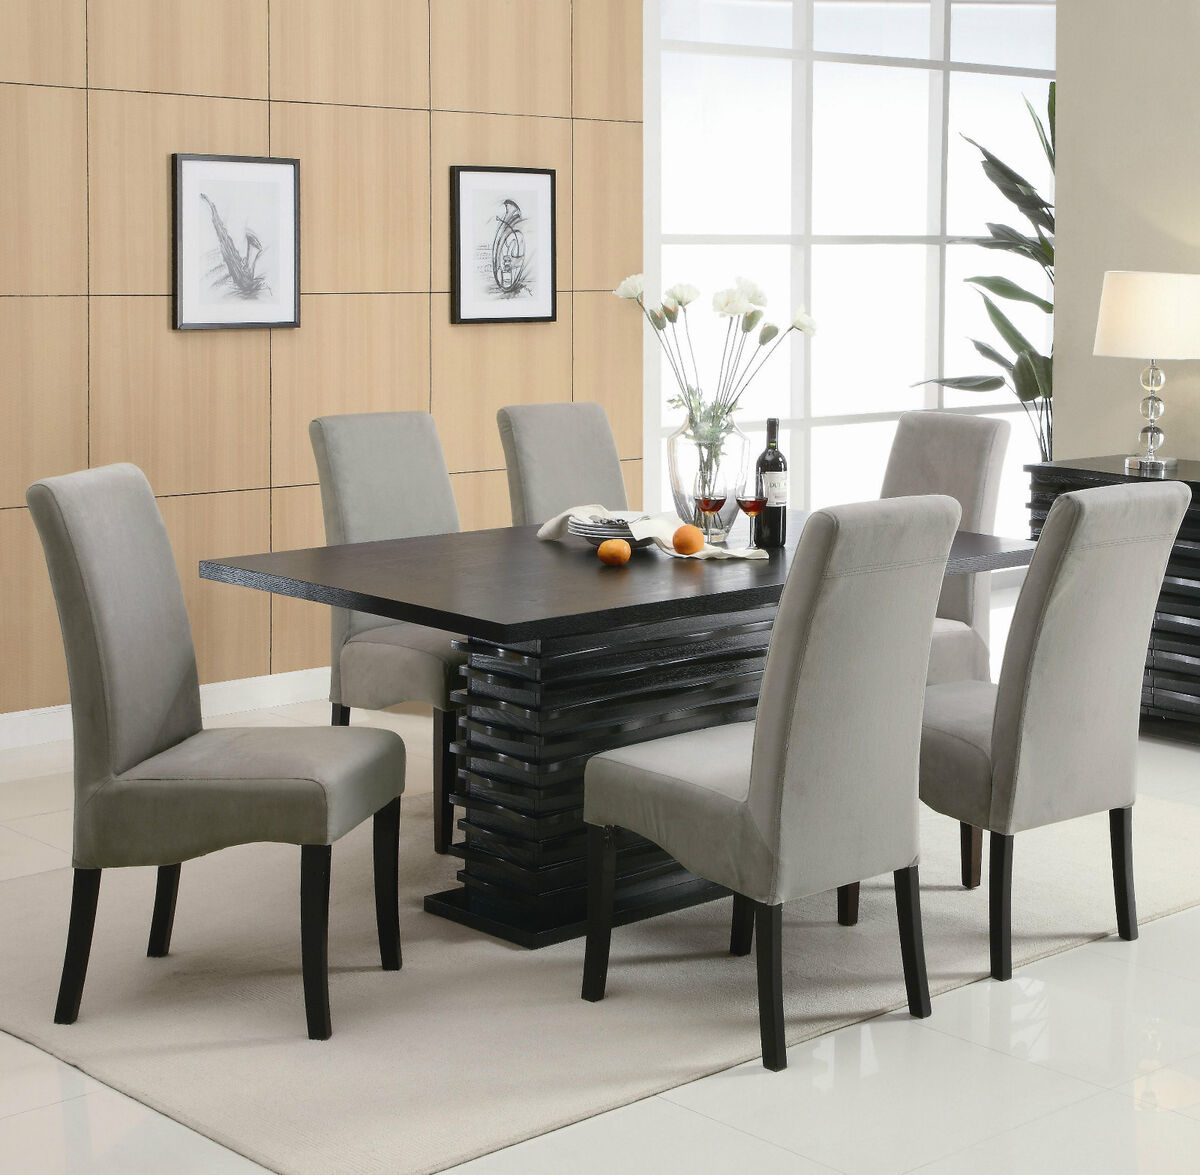 Jerusalem Furniture Dining Room